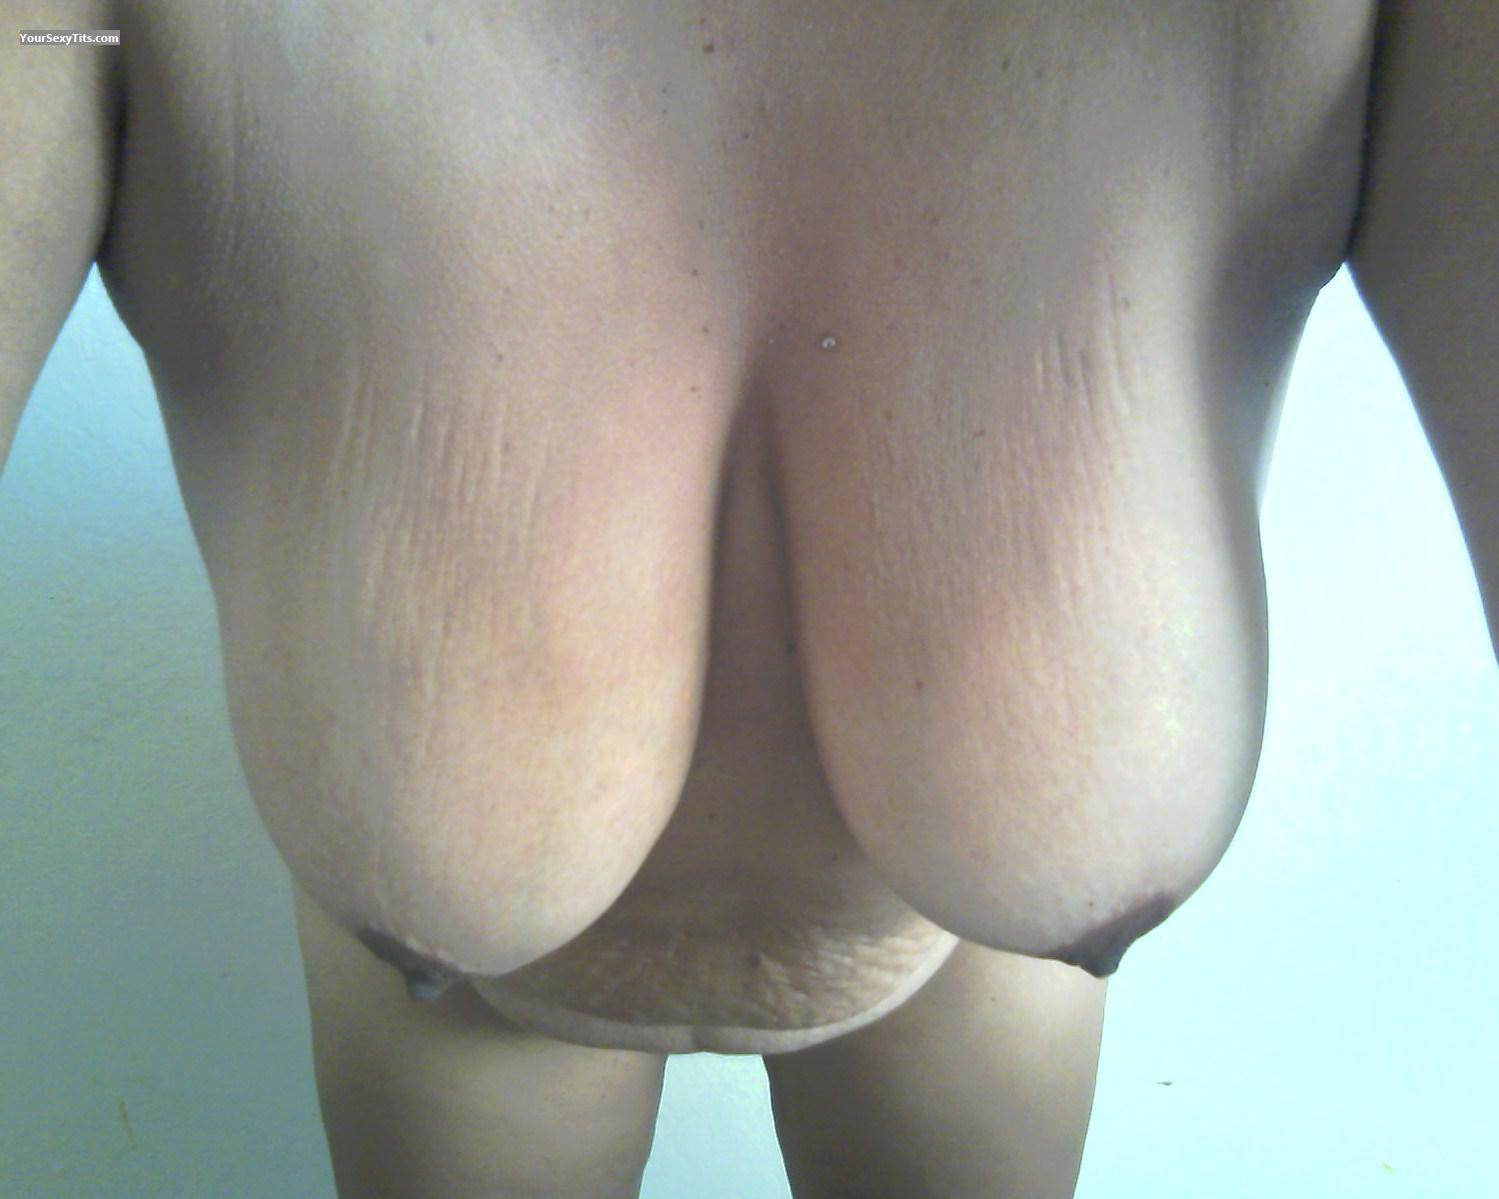 Tit Flash: Wife's Very Big Tits - Brown Beauty from United States